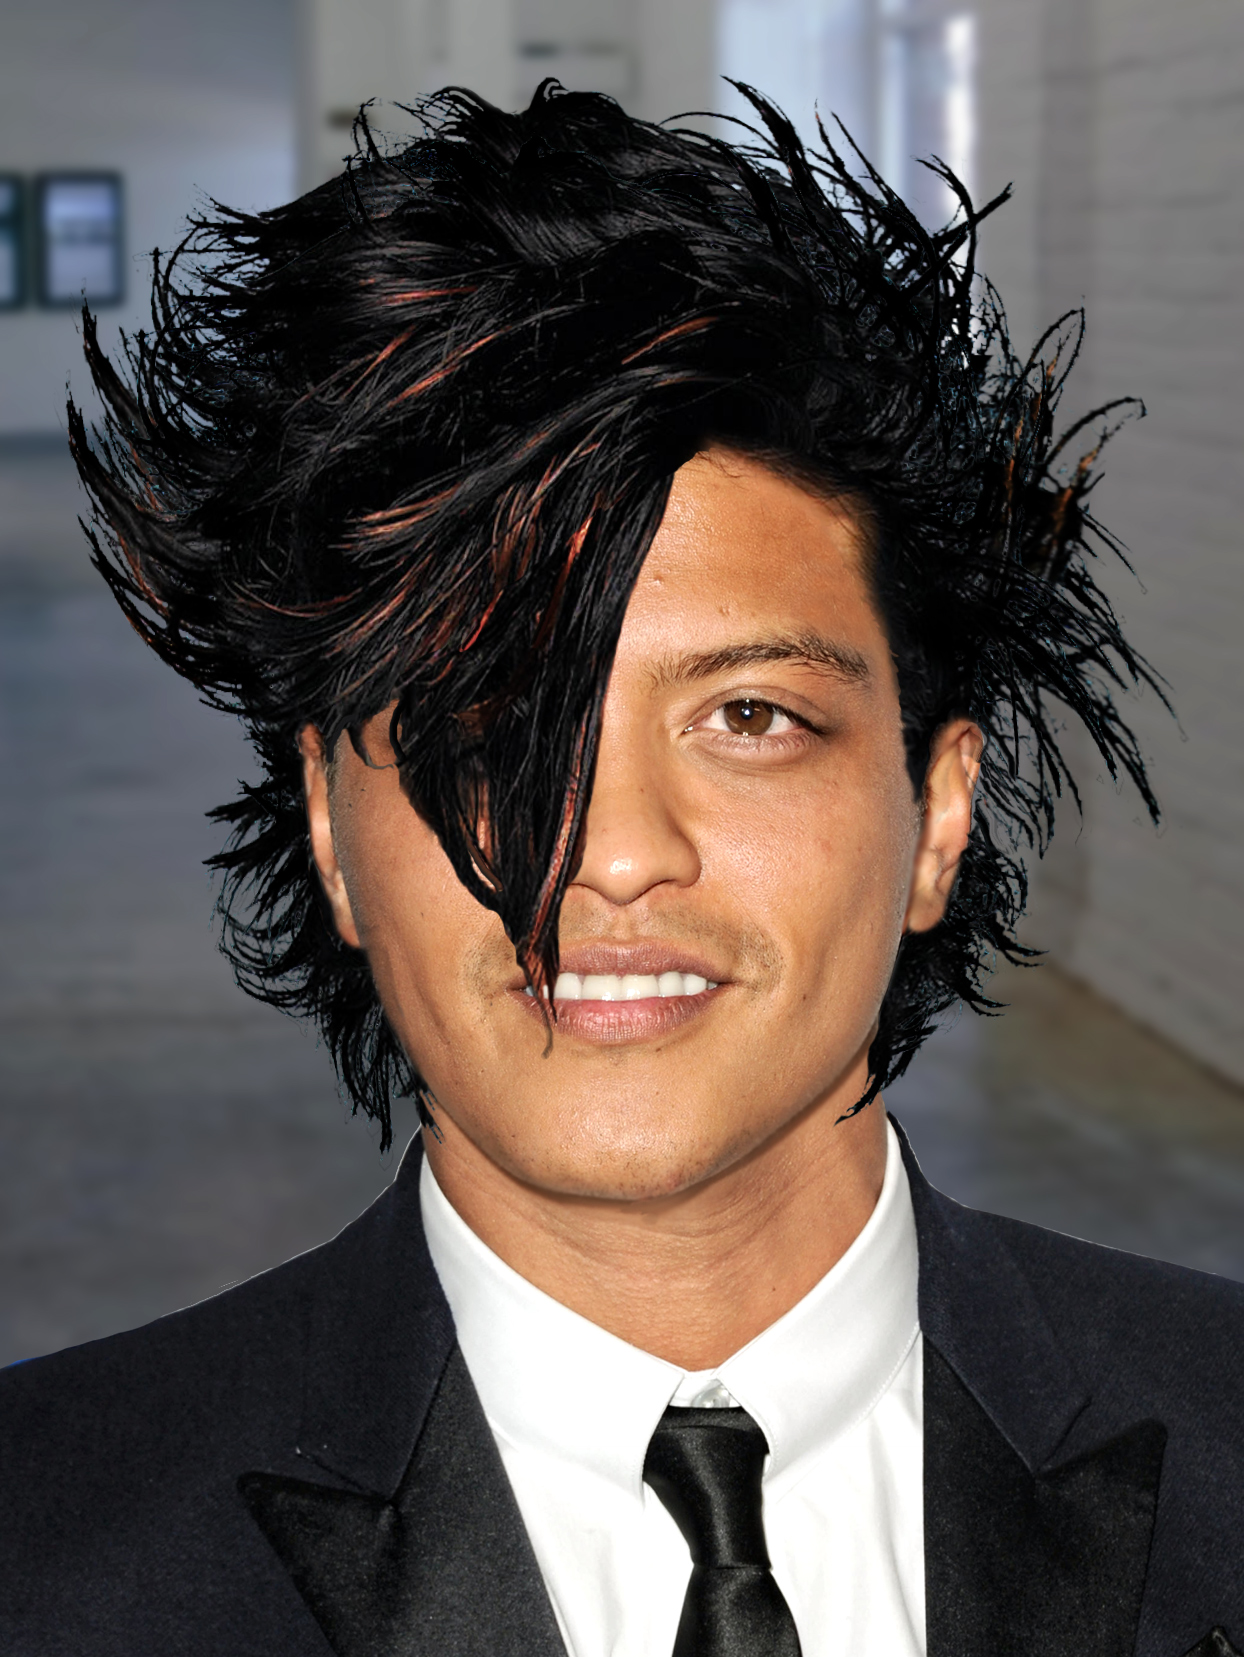 bruno mars hair styles bruno mars hairstyle name fade haircut 7299